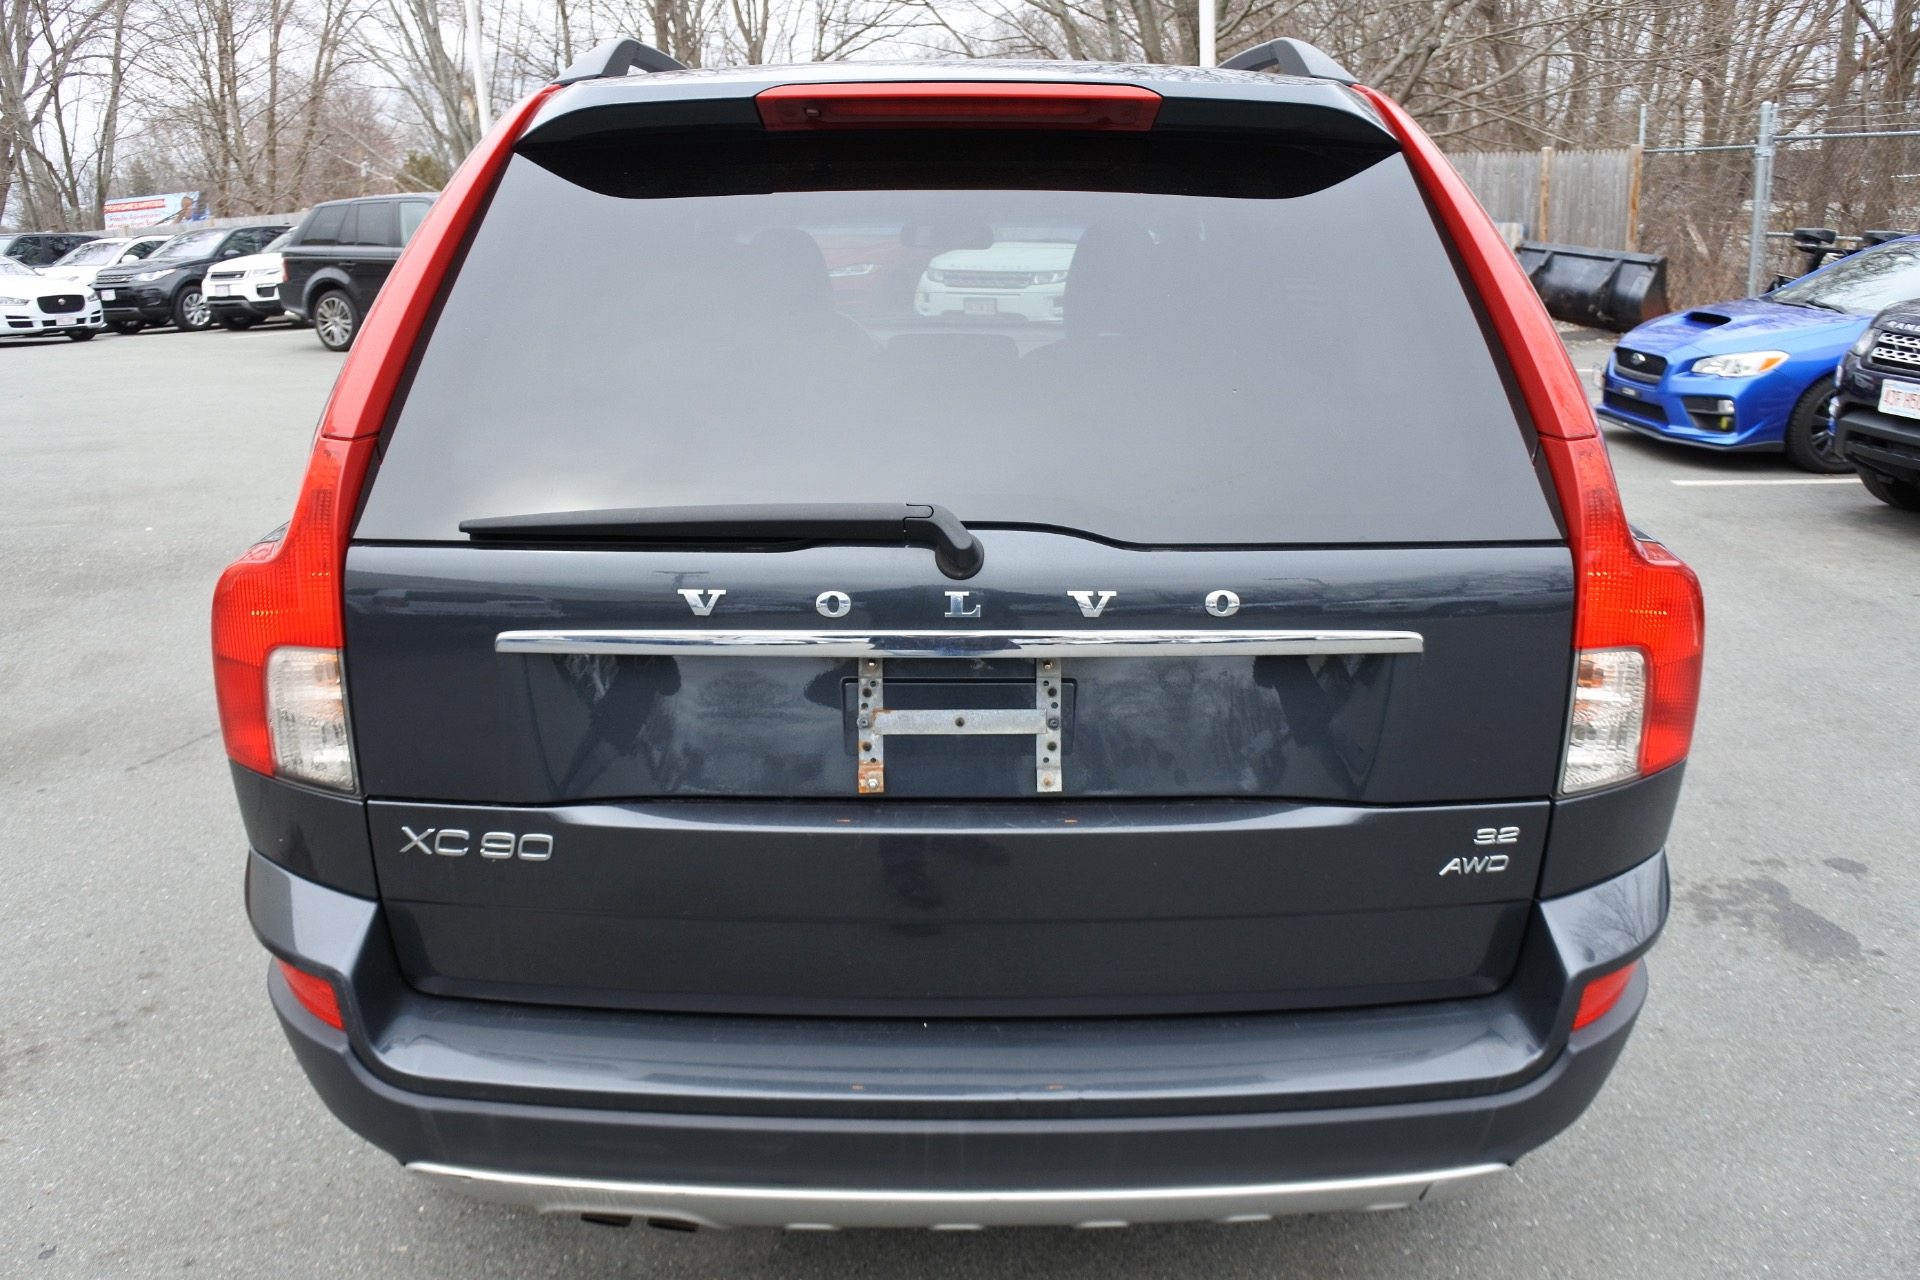 Used 2009 Volvo Xc90 AWD 4dr I6 w/Sunroof Used 2009 Volvo Xc90 AWD 4dr I6 w/Sunroof for sale  at Metro West Motorcars LLC in Shrewsbury MA 4